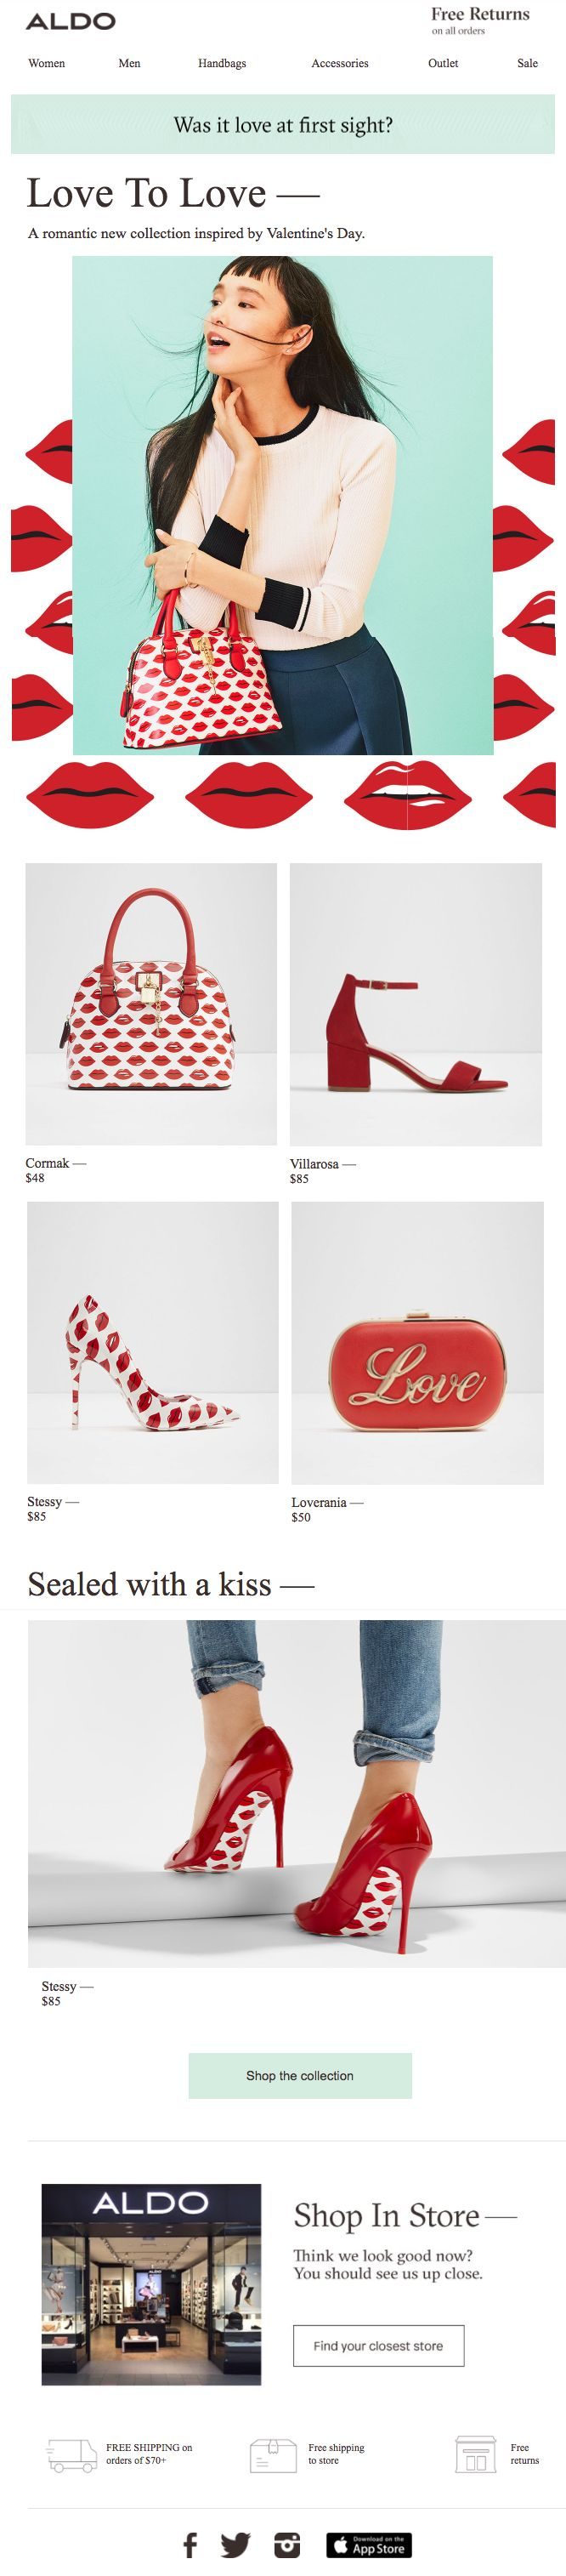 Aldo uses bright graphical elements and contrast to grab customers' attention with this marketing email.